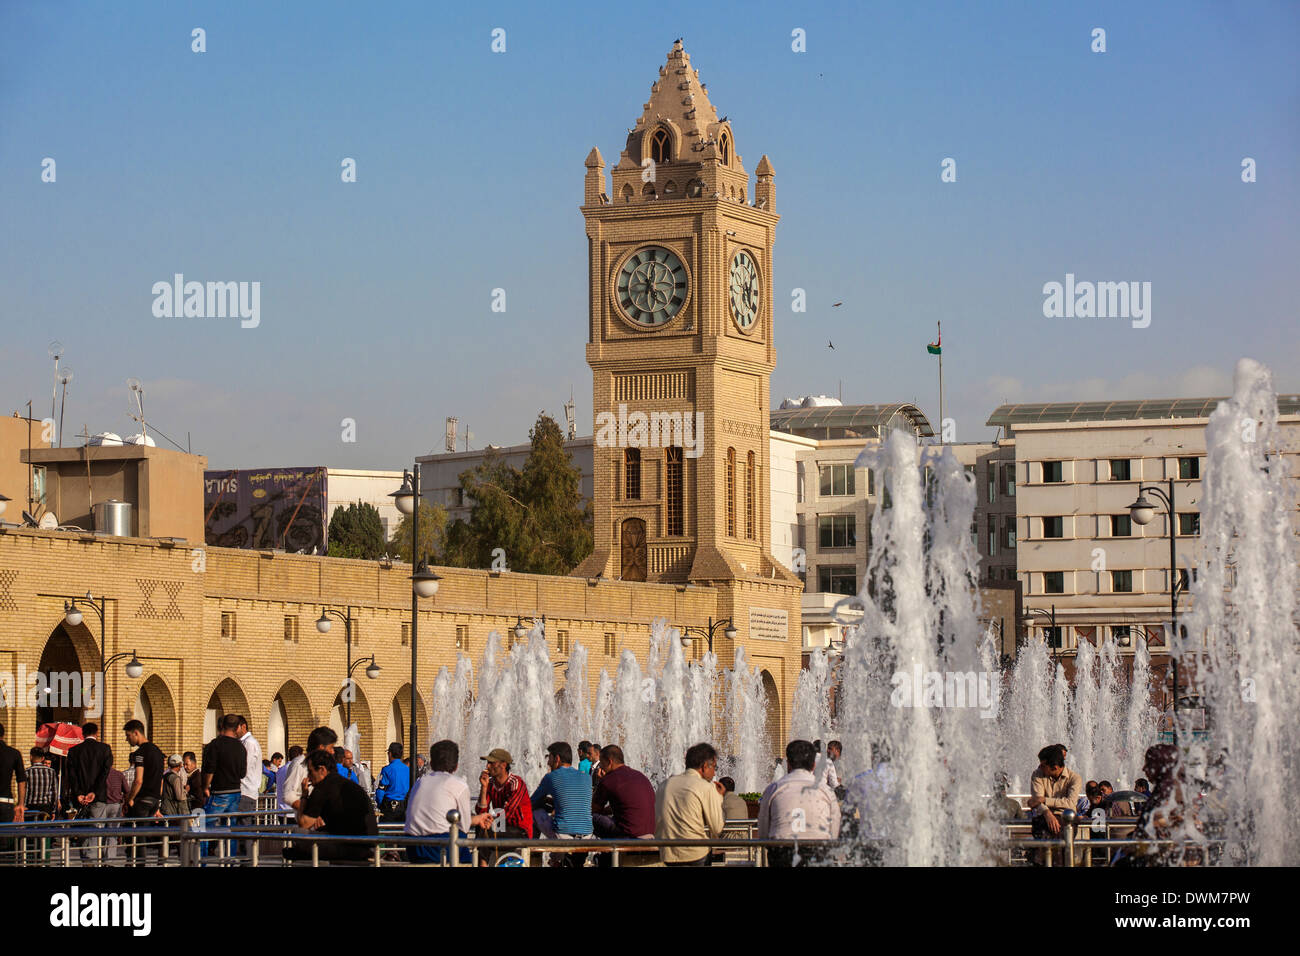 Clock tower in Shar Park, Erbil, Kurdistan, Iraq, Middle East - Stock Image